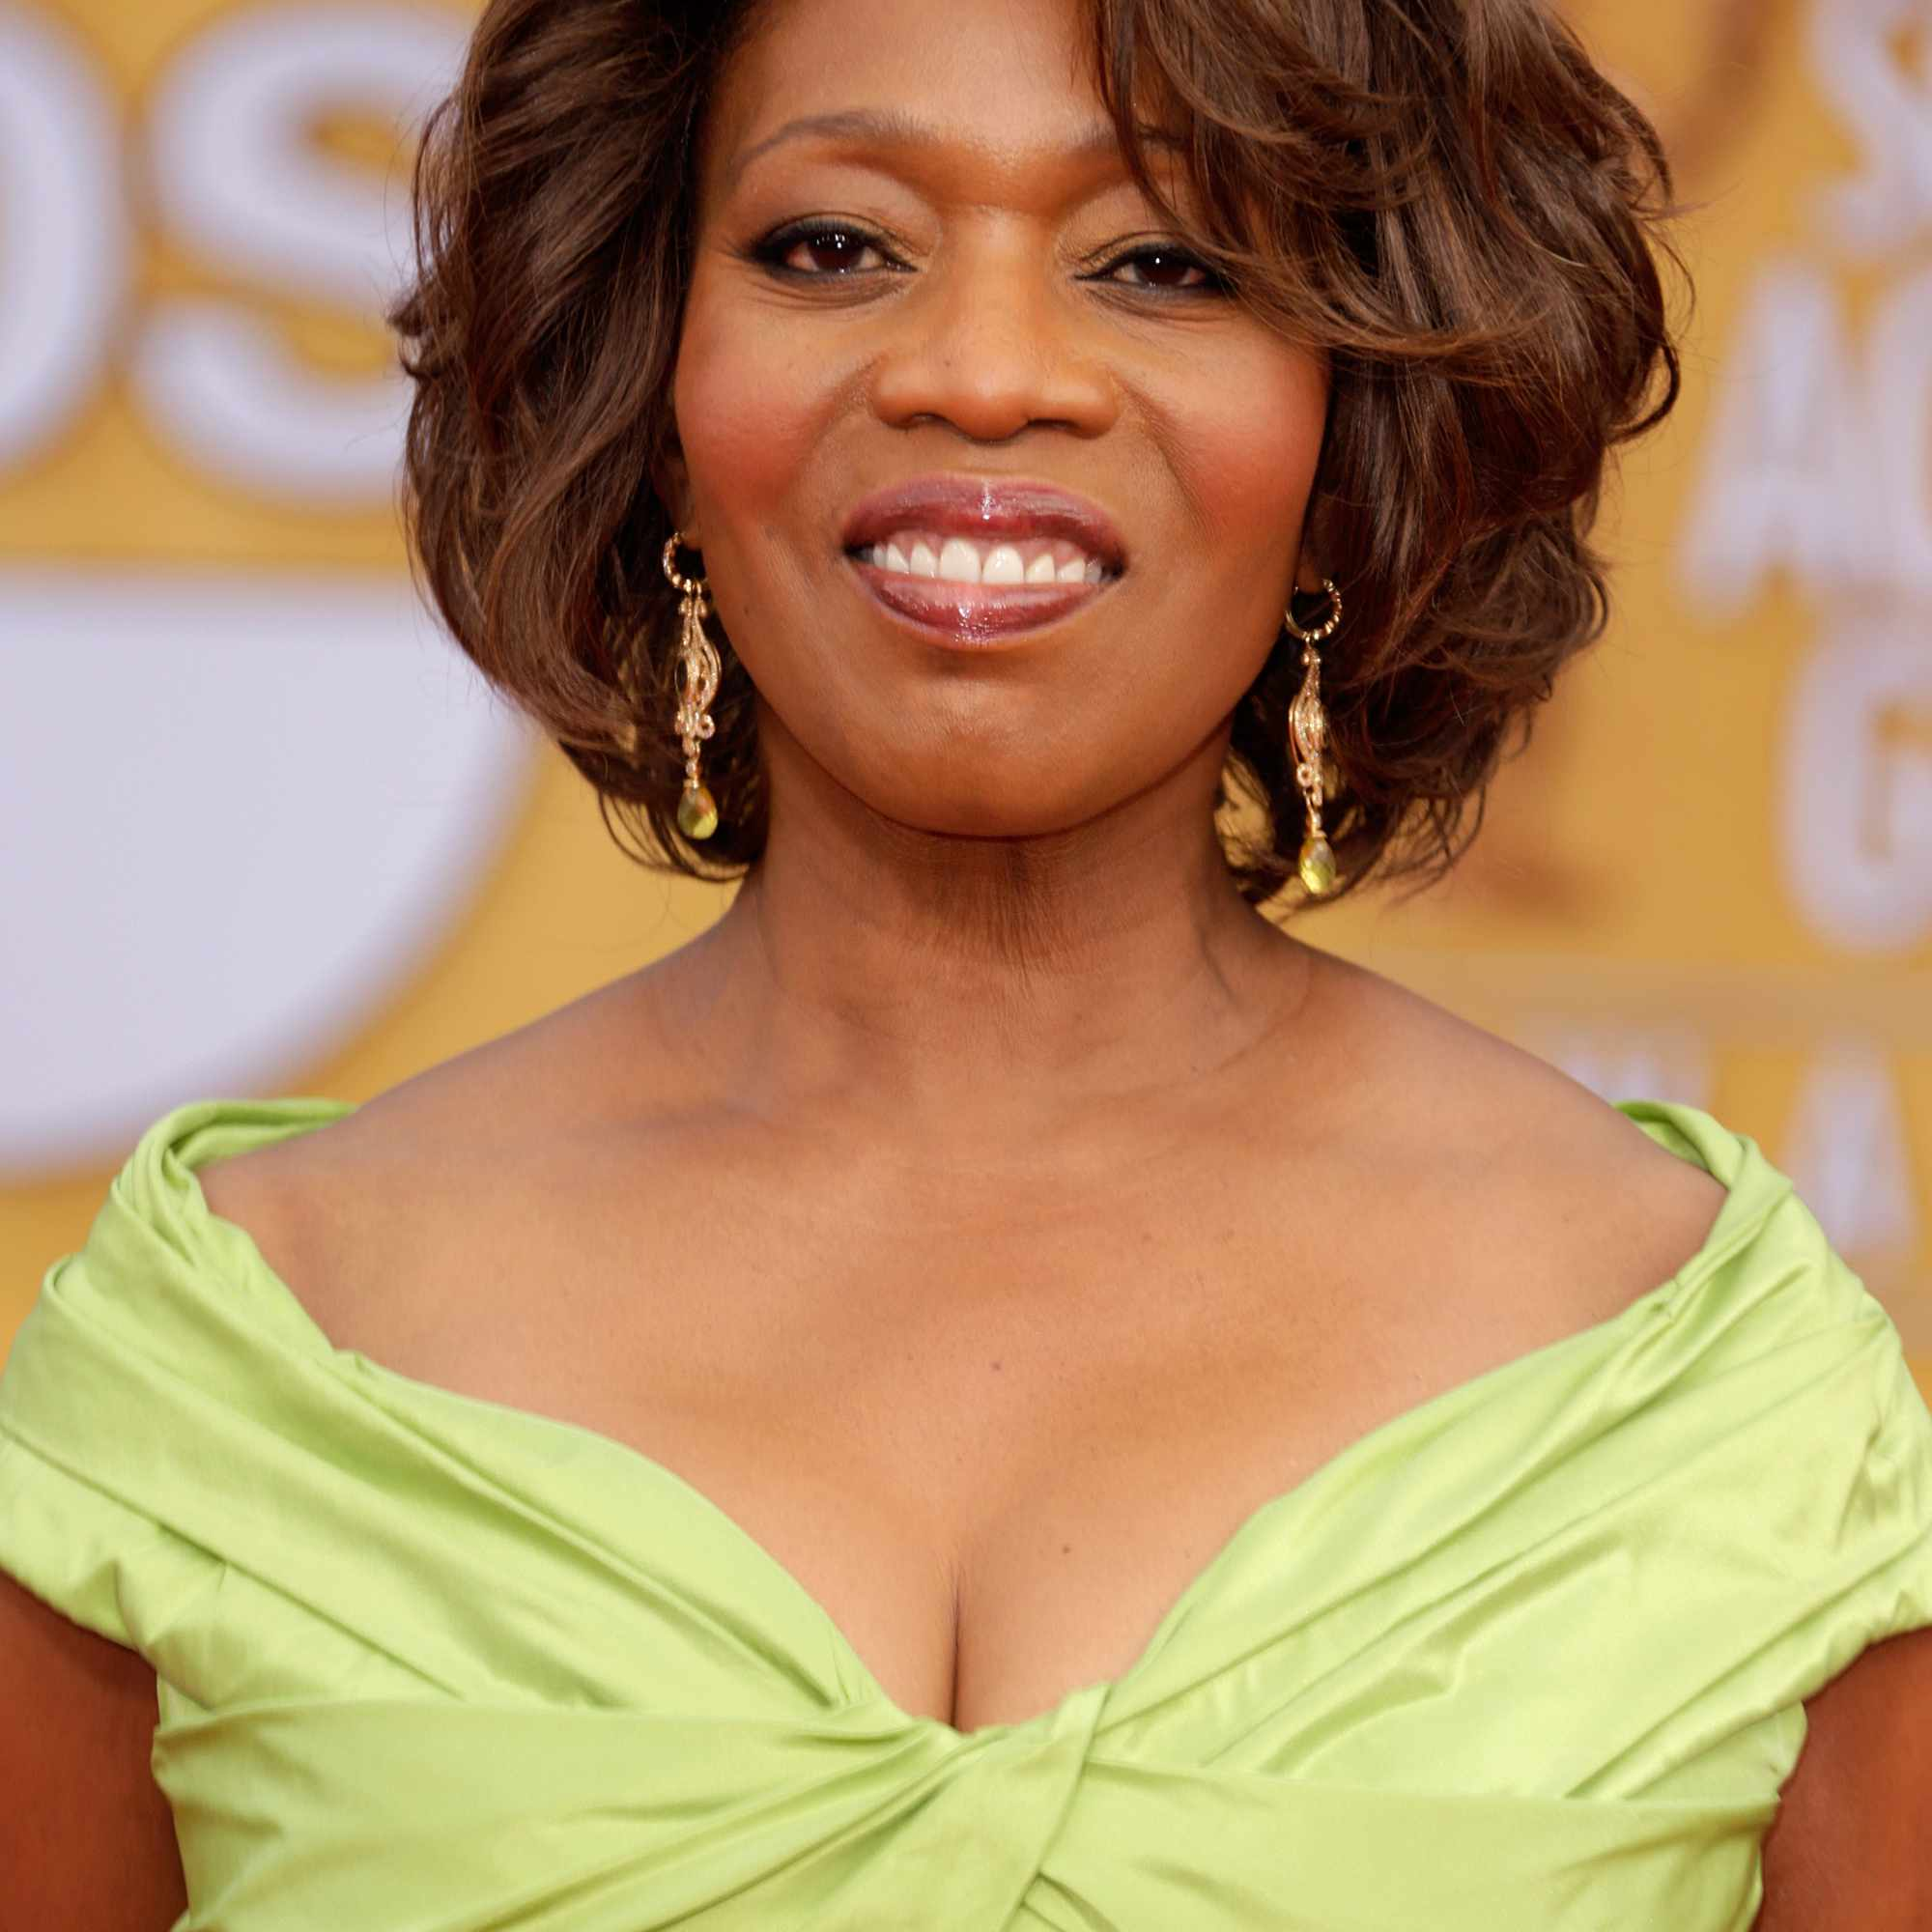 5 Classic and Cool Short Hairstyles for Older Women